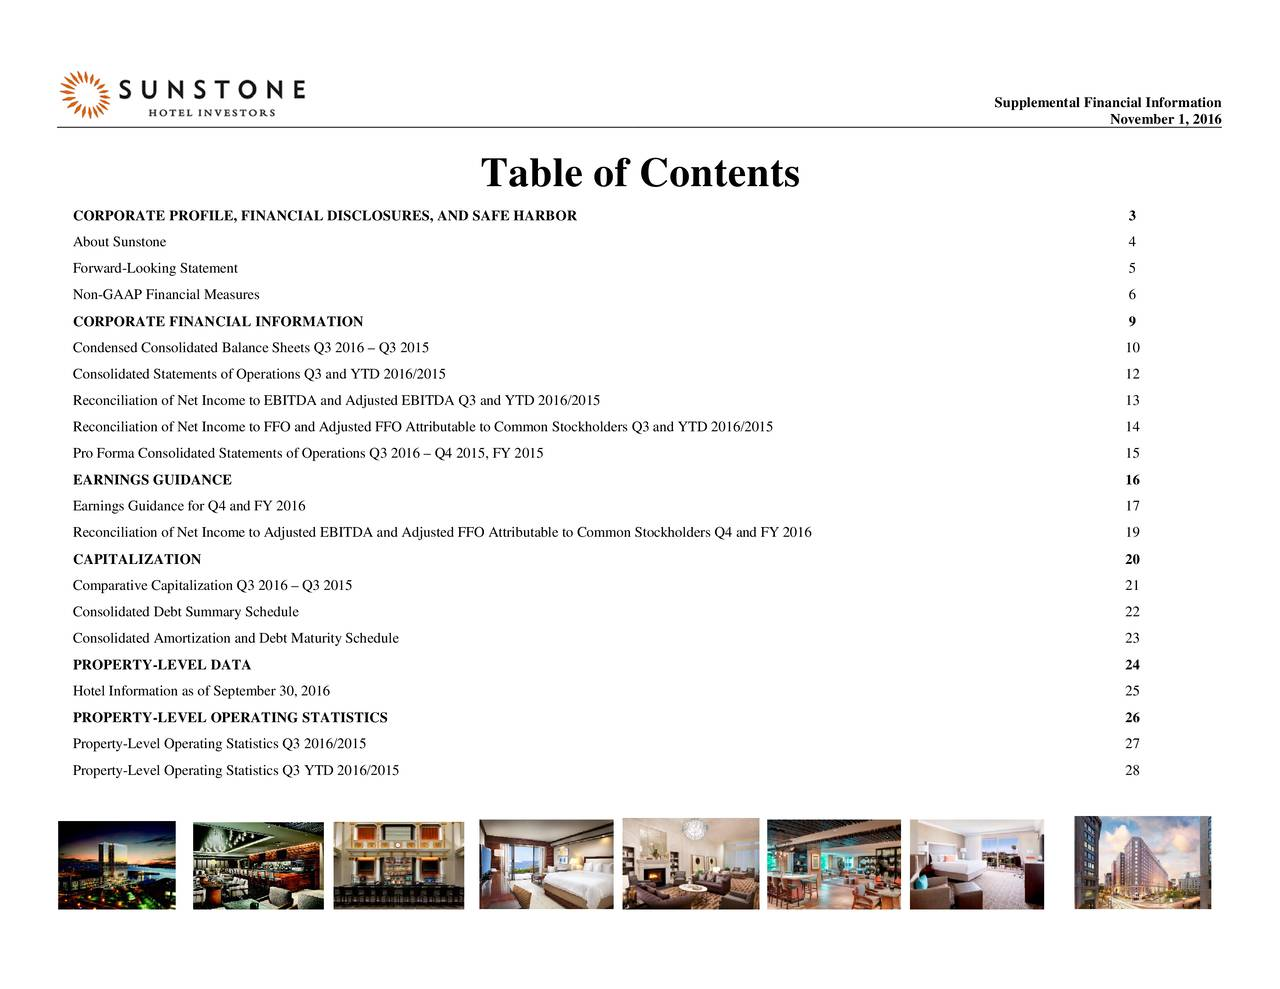 November 1, 2016 Table of Contents CORPORATE PROFILE, FINANCIAL DISCLOSURES, AND SAFE HARBOR 3 About Sunstone 4 Forward-Looking Statement 5 Non-GAAP Financial Measures 6 CORPORATE FINANCIAL INFORMATION 9 Condensed Consolidated Balance Sheets Q3 2016  Q3 2015 10 Consolidated Statements of Operations Q3 and YTD 2016/2015 12 Reconciliation of Net Incometo EBITDA and Adjusted EBITDA Q3 and YTD 2016/2015 13 Reconciliation of Net Income to FFOand Adjusted FFO Attributable to Common Stockholders Q3 and YTD 2016/2015 14 Pro Forma Consolidated Statements of Operations Q 3 2016  Q4 2015, FY 2015 15 EARNINGS GUIDANCE 16 Earnings Guidance for Q4 and FY 2016 17 Reconciliation of Net Income to Adjusted EBITDA and Adjusted FFO Attributable to Common Stockholders Q4 and FY 2016 19 CAPITALIZATION 20 Comparative Capitalization Q3 2016  Q3 2015 21 Consolidated Debt Summary Schedule 22 Consolidated Amortization and Debt Maturity Schedule 23 PROPERTY-LEVEL DATA 24 Hotel Information as of September 30, 2016 25 PROPERTY-LEVEL OPERATING STATISTICS 26 Property-Level Operating Statistics Q3 2016/2015 27 Property-Level Operating Statistics Q3 YTD 2016/2015 28